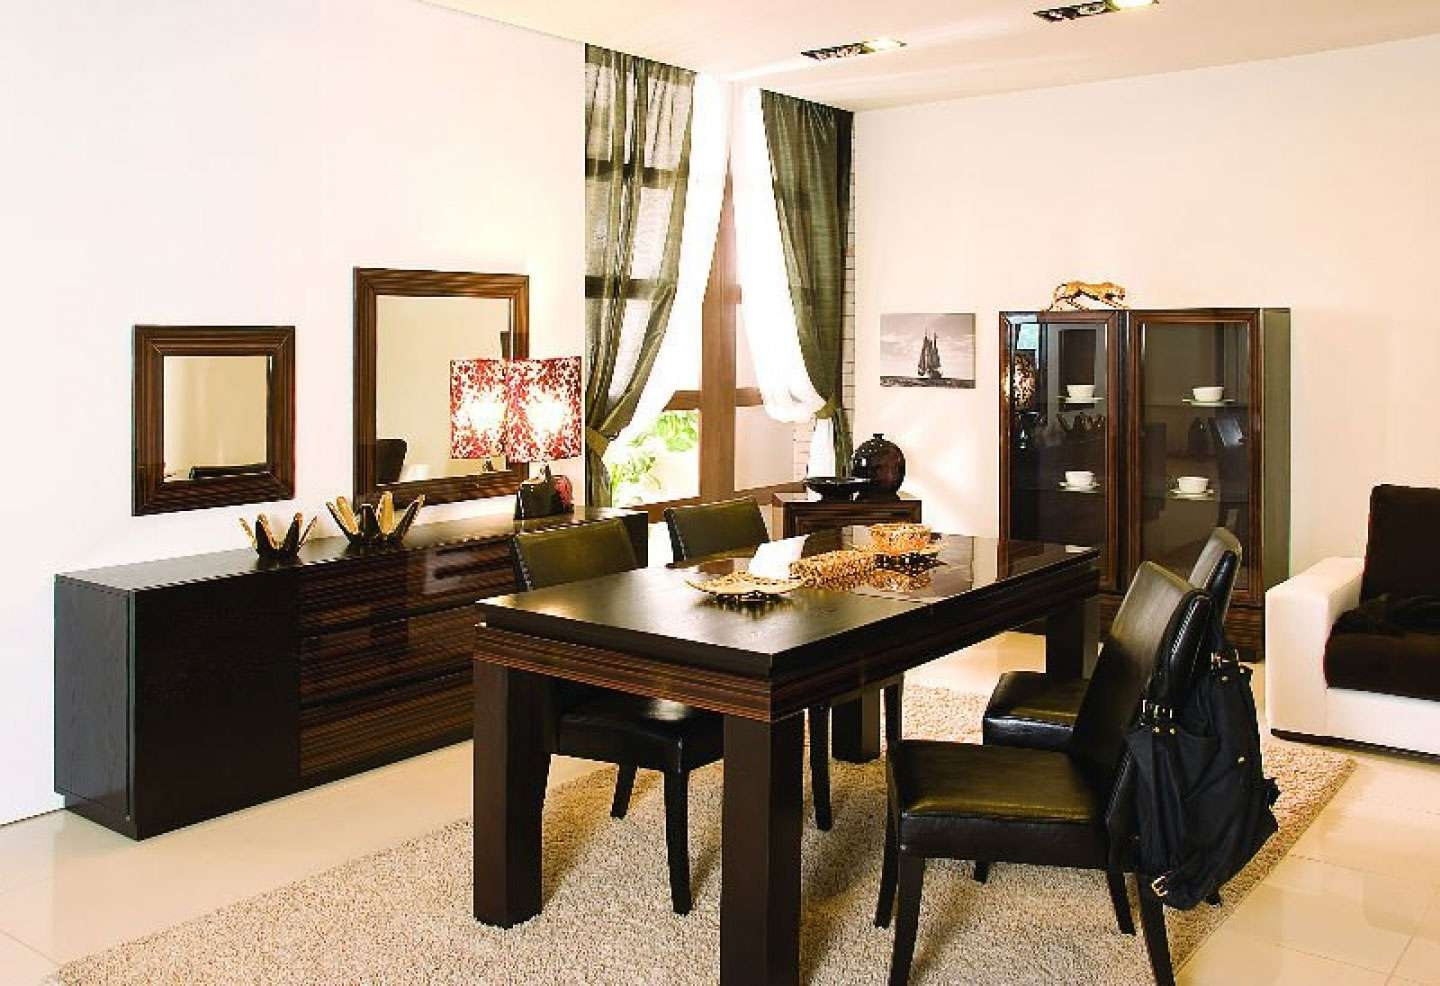 Classic Dining Room Table Set Bring Back Past Impression – Amaza In Dining Room Sets With Sideboards (View 7 of 20)